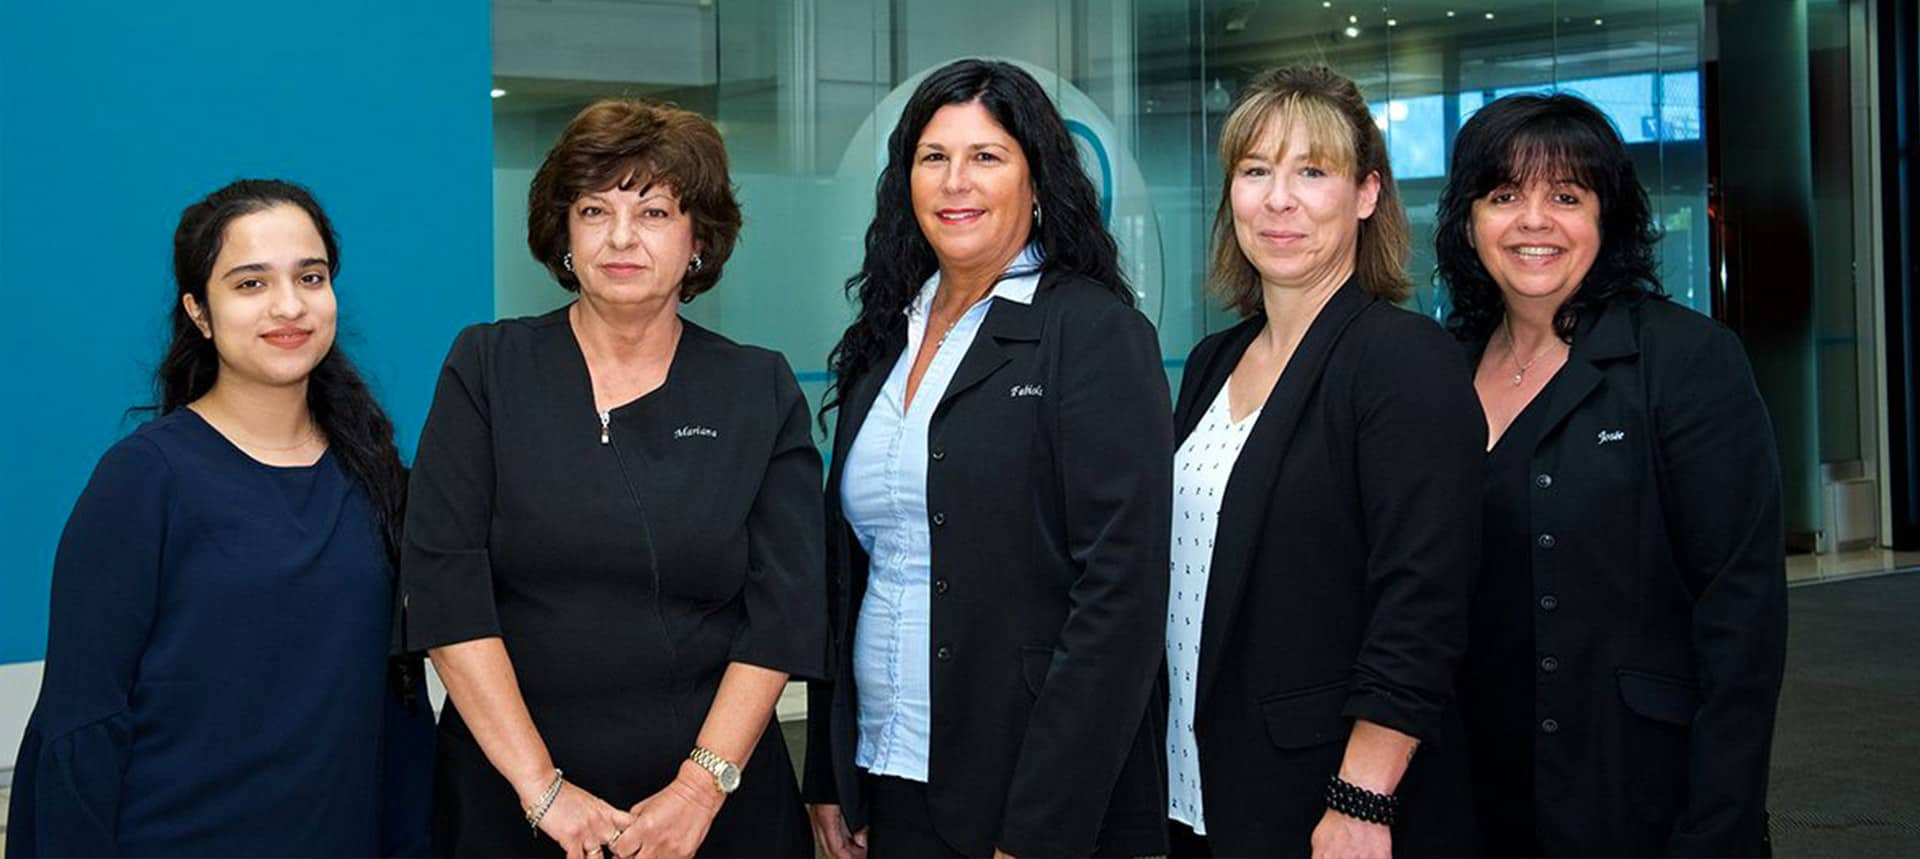 Clinique Dentaire Champlain administrative assistants